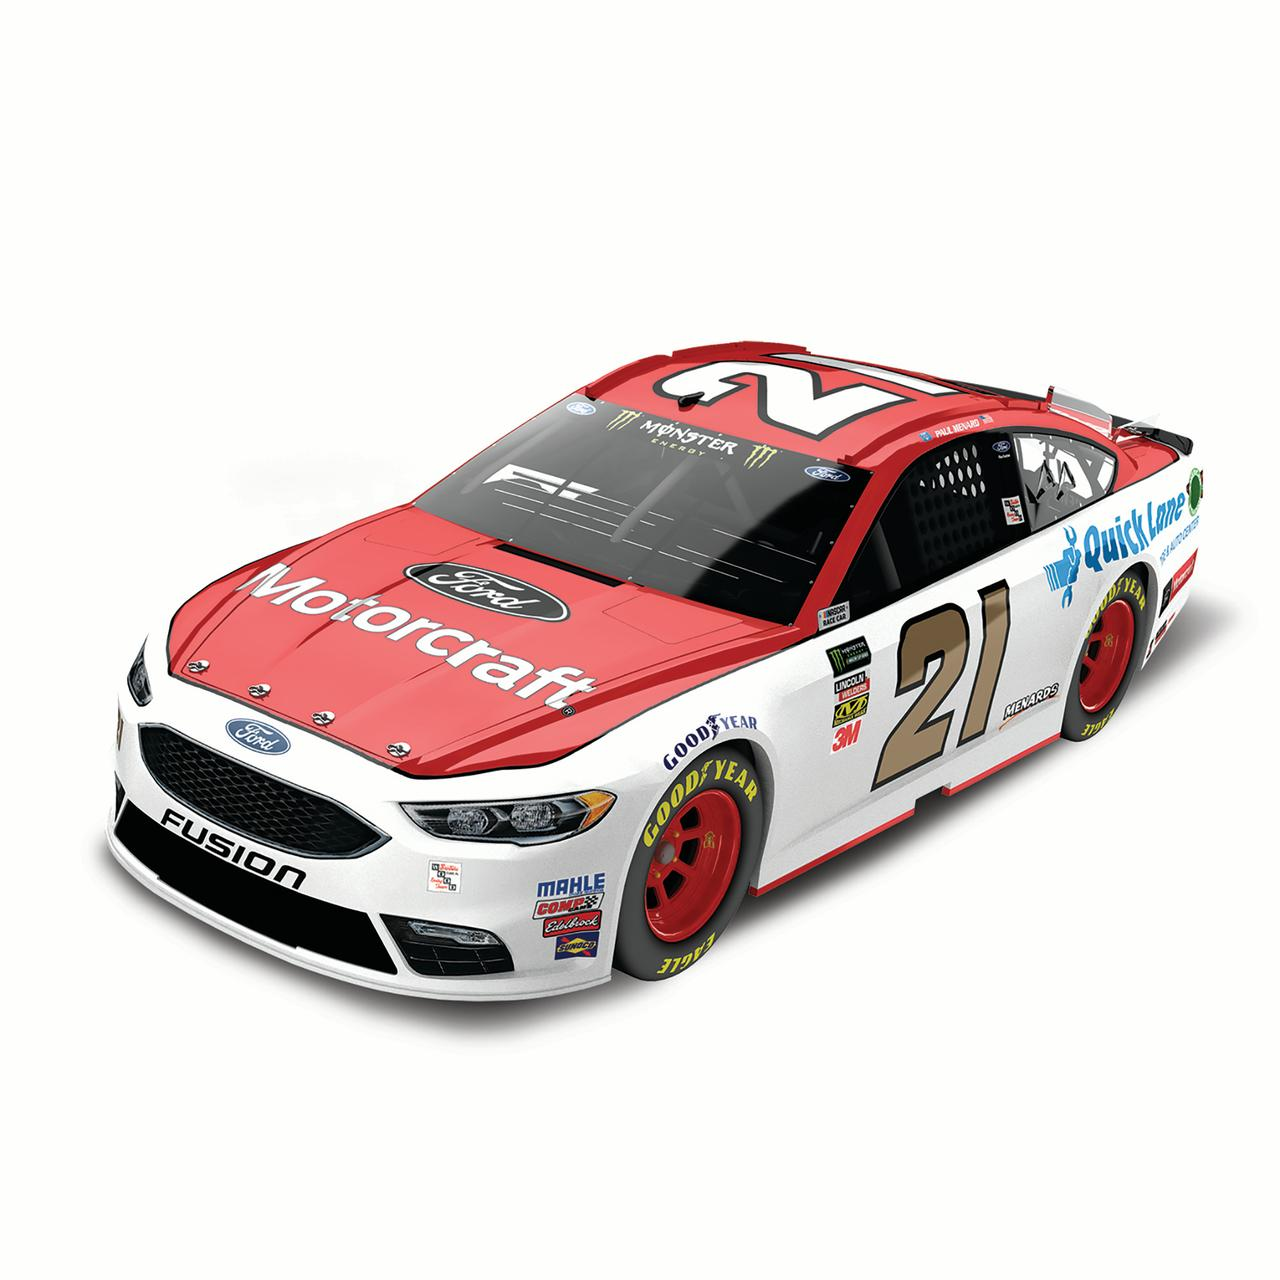 Paul Menard Action Racing 2018 #21 Ford Motorcraft 1:24 Monster Energy Nascar Cup Series... by Lionel LLC